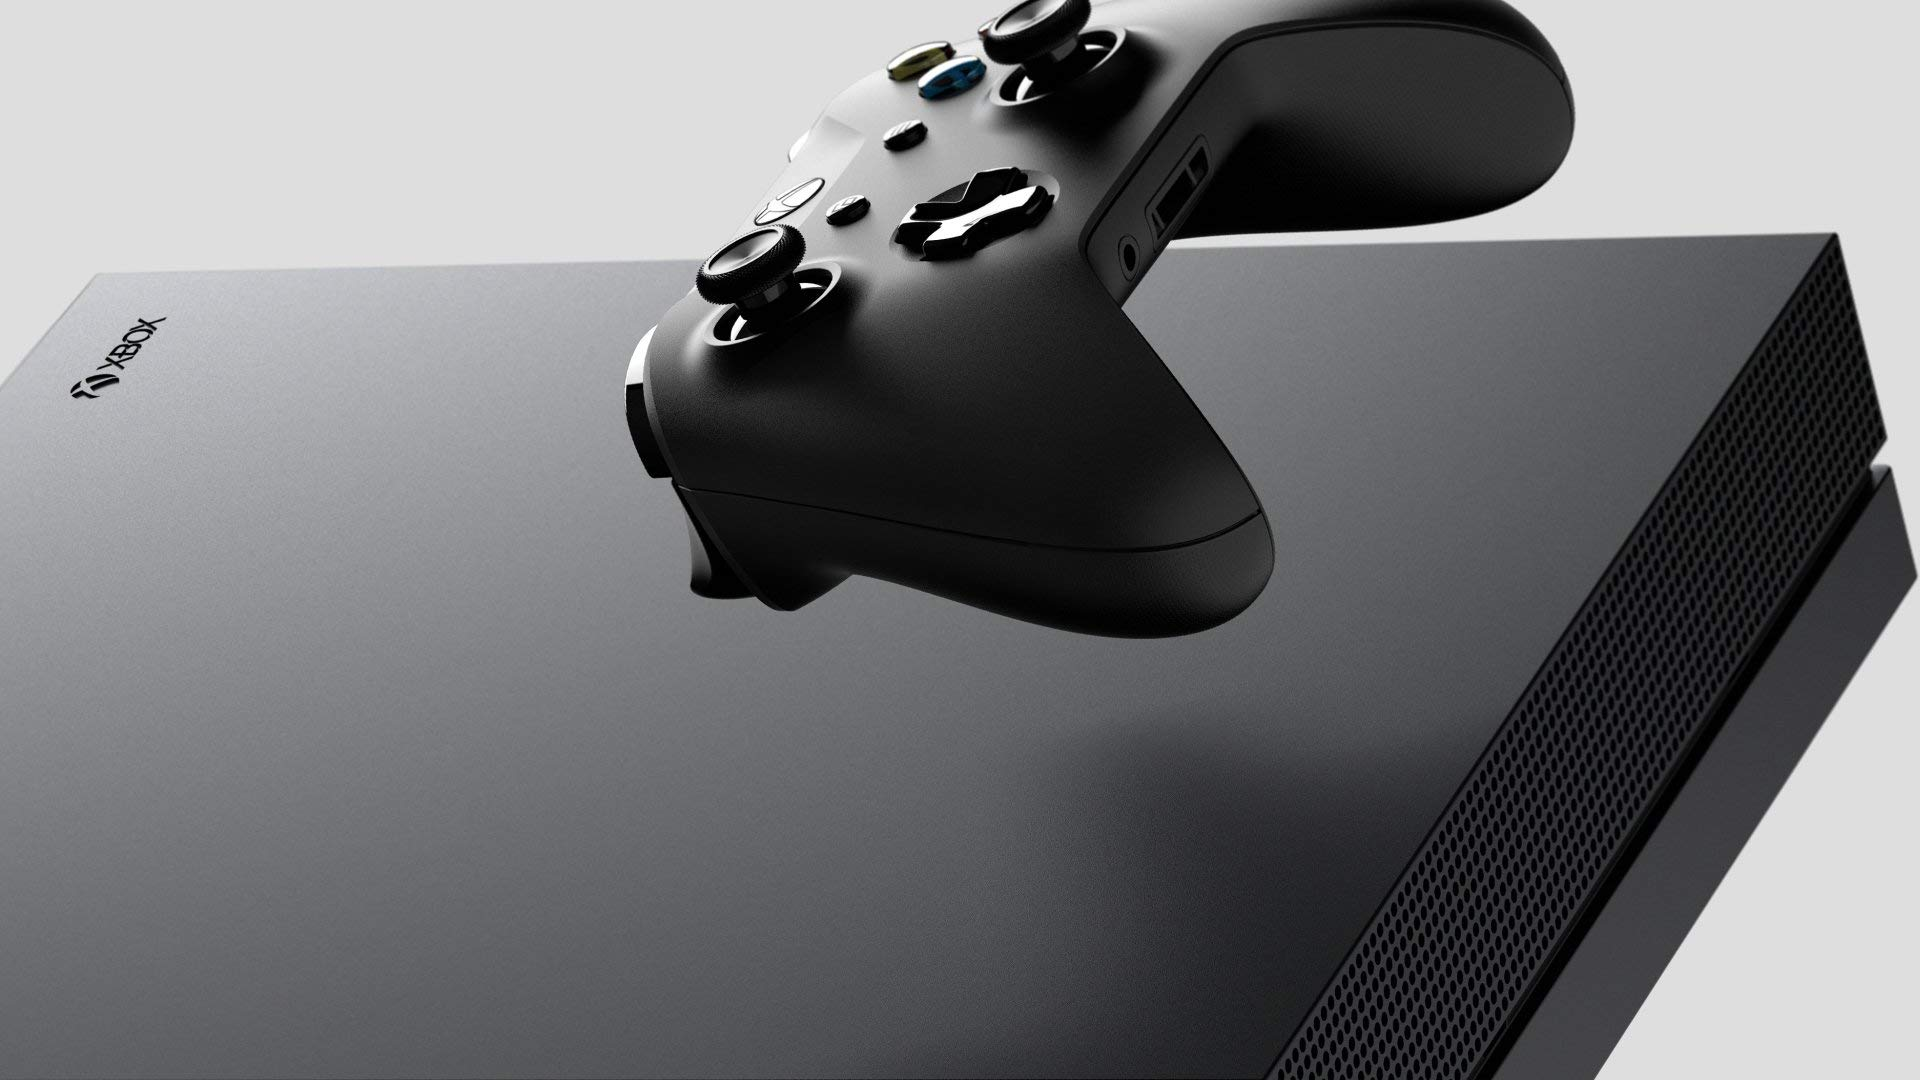 Microsoft Xbox One X 1TB Console with Wireless Controller: Xbox One X Enhanced, HDR, Native 4K, Ultra HD by Microsoft (Image #5)